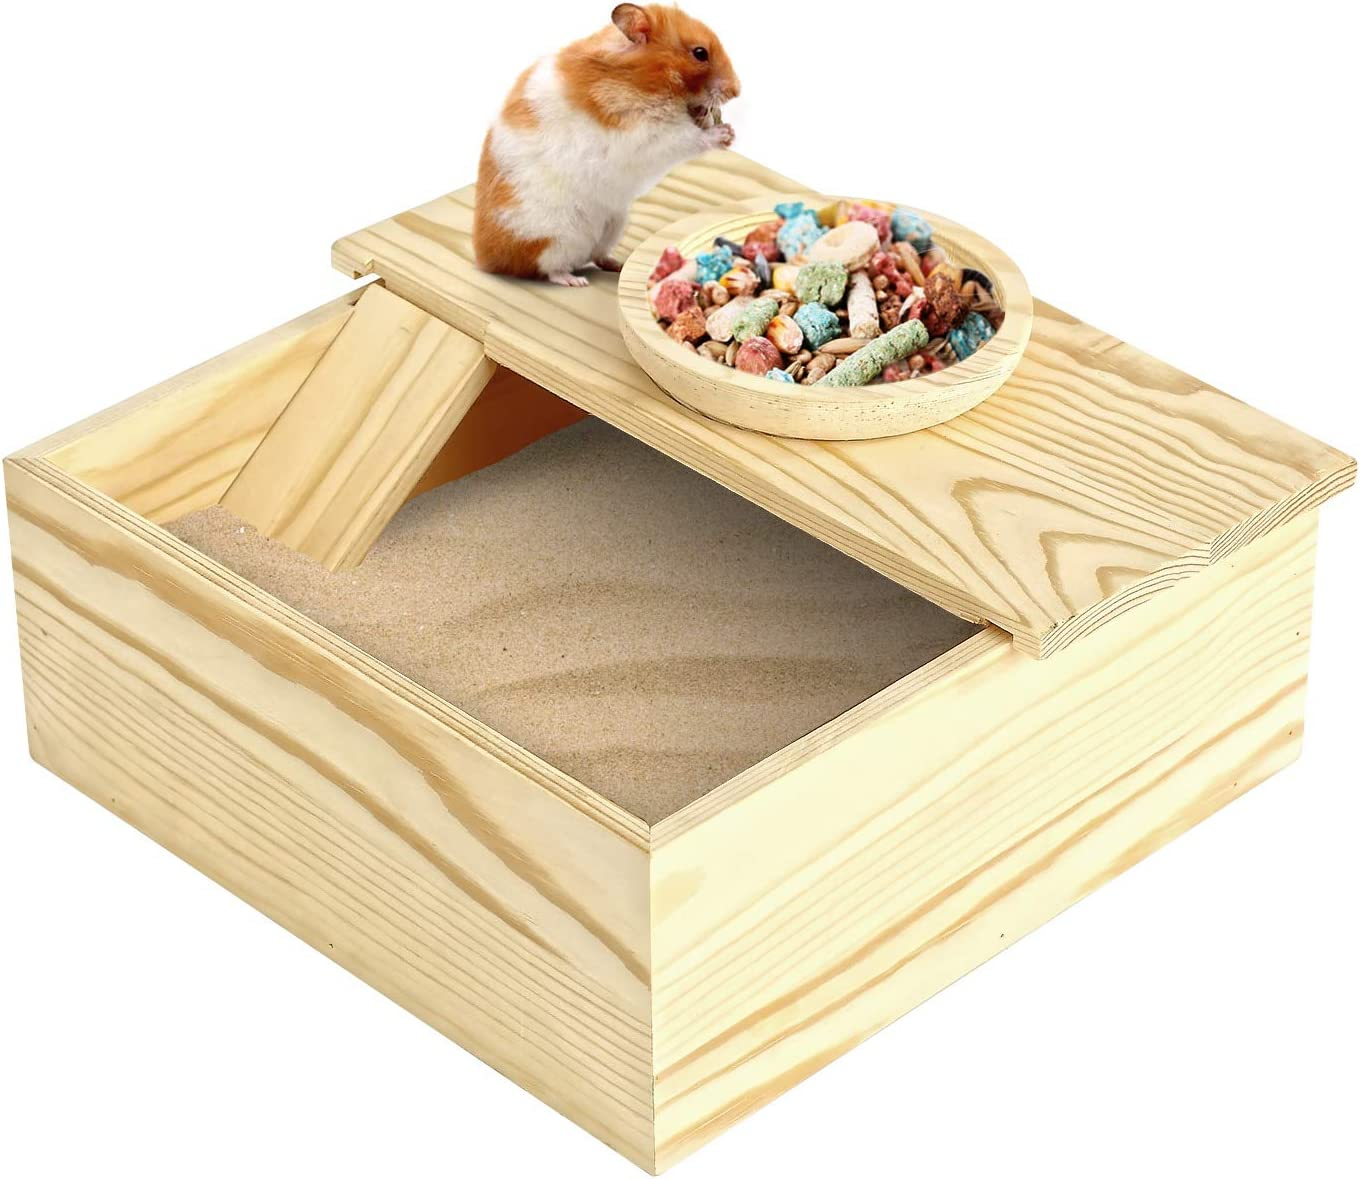 Wooden Small Pets Sand Bath Box with Tiny Pet Bowl- 7.7